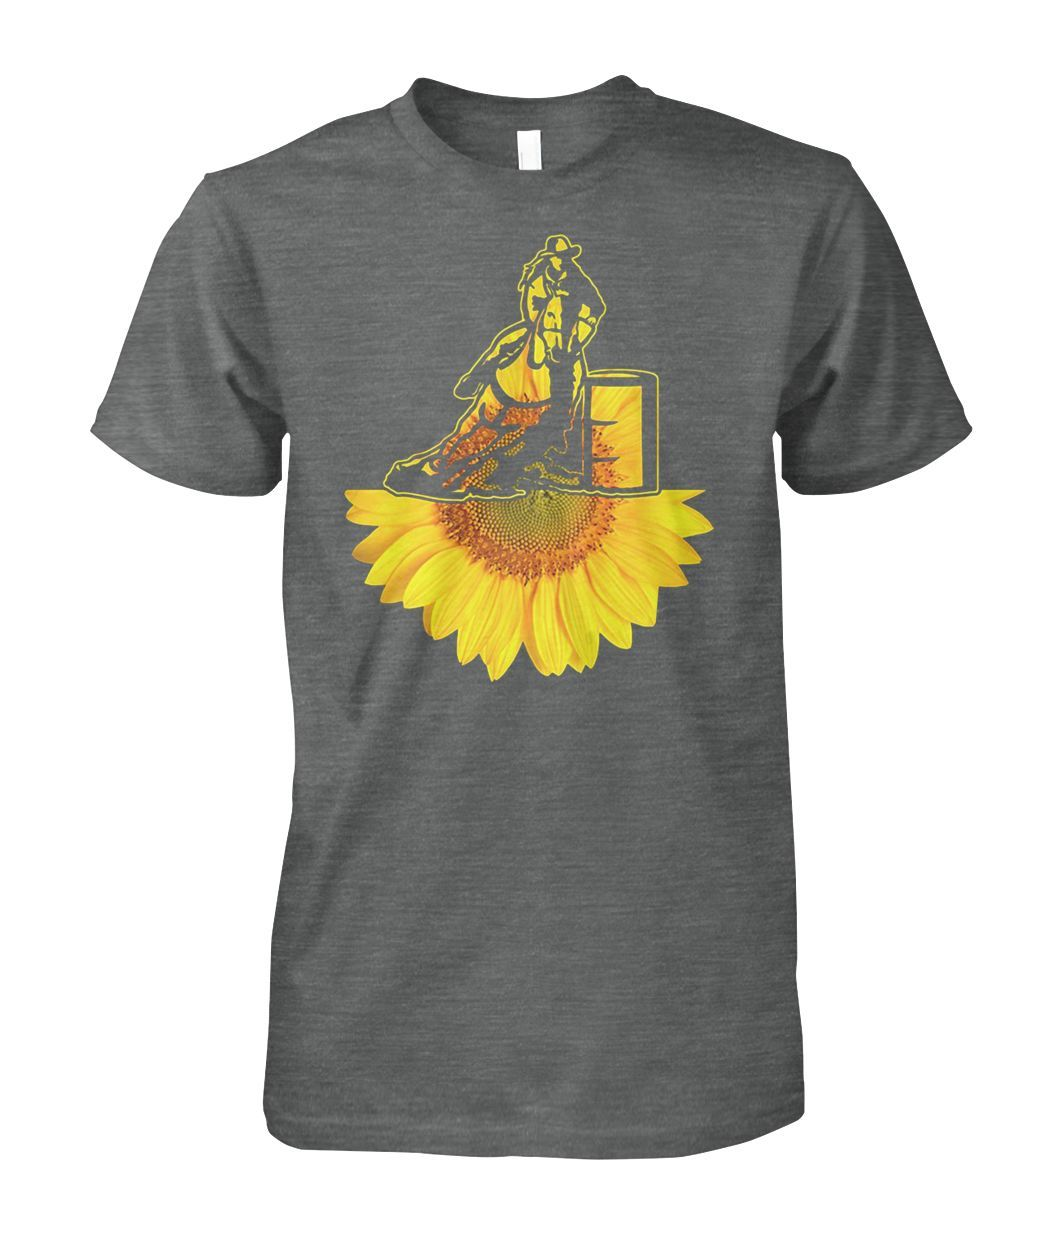 f60d411d Cowboy sunflower Tee Shirt in 2019 | Trending shirt | Sunflower ...